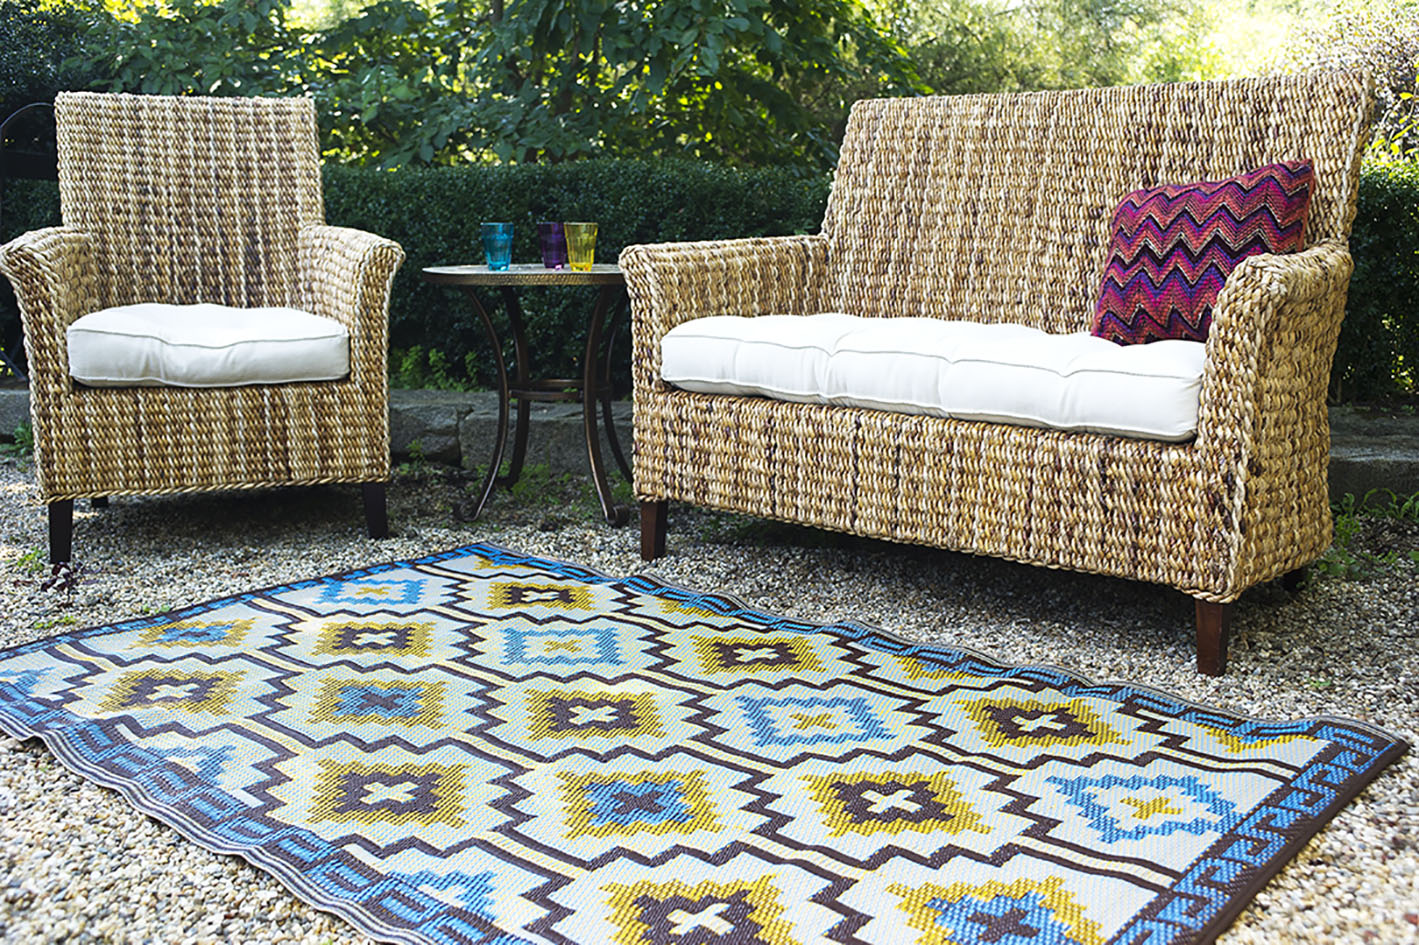 Fab Habitat's new Lhasa blue and brown recycled plastic rug - find this US brand in the UK at Wayfai